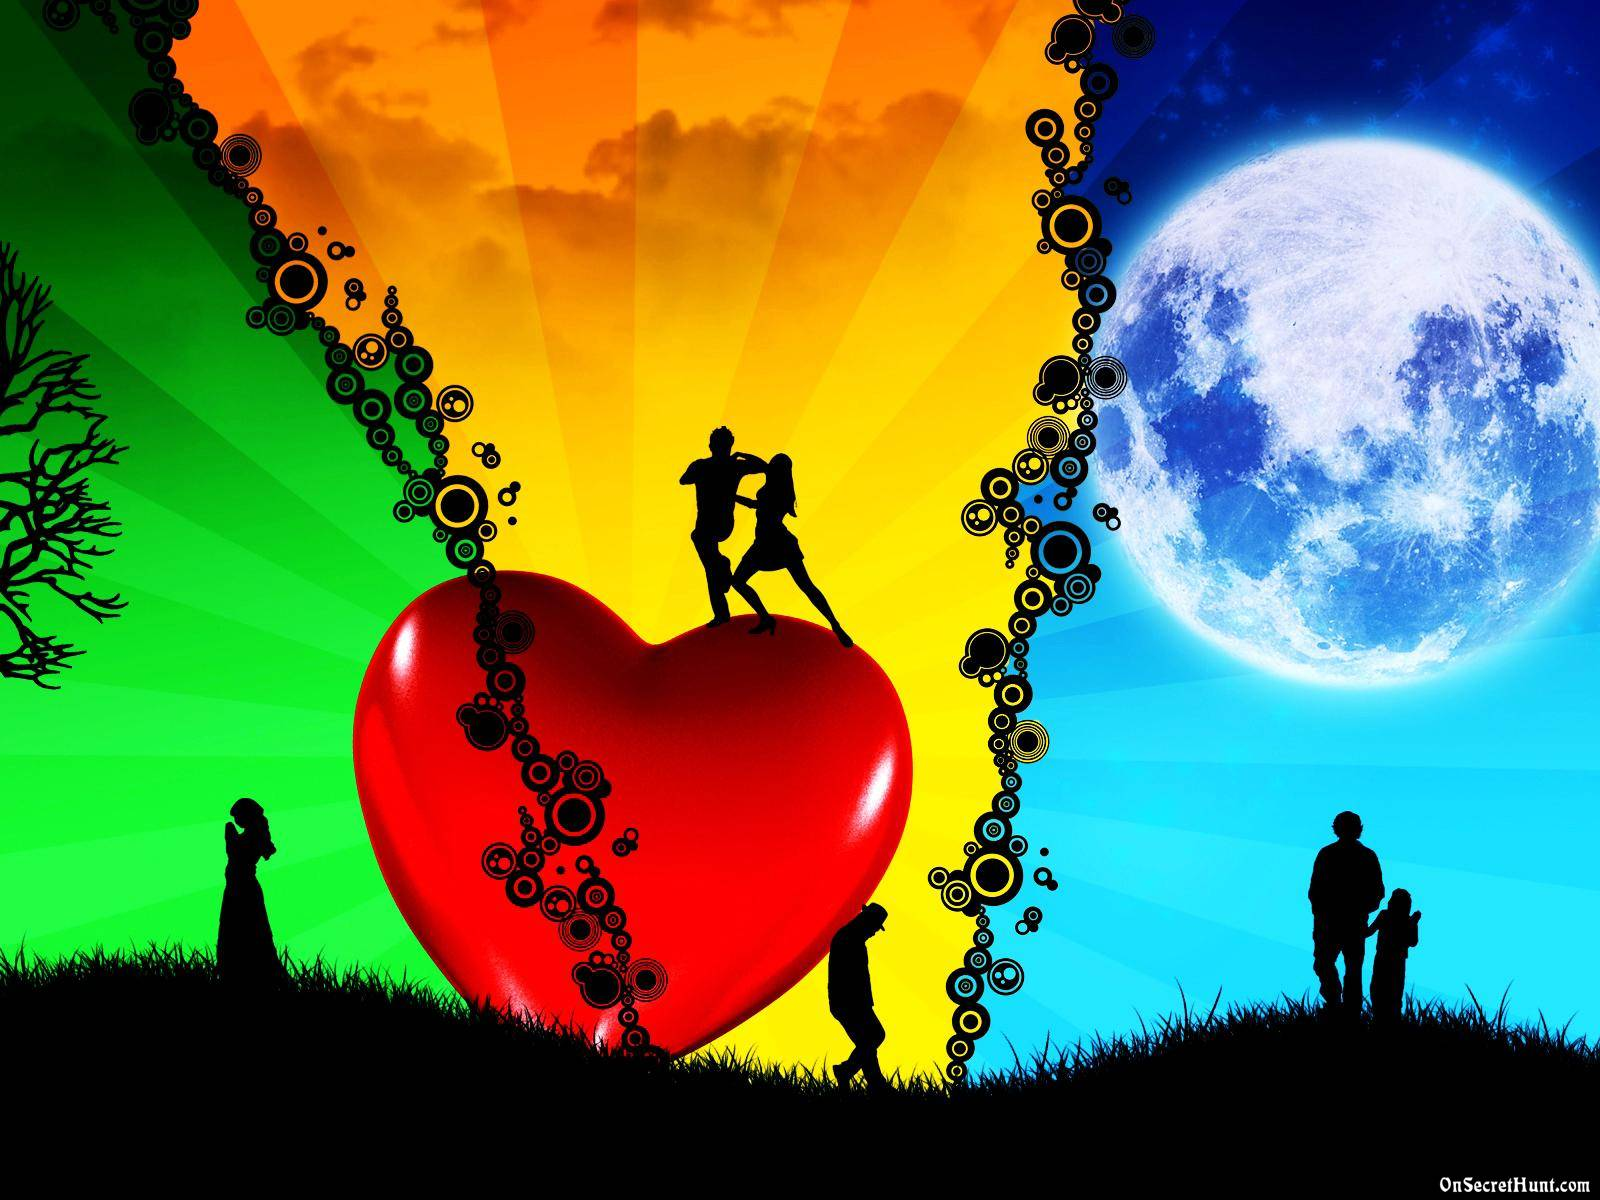 Love Wallpaper Big Size : Love Wallpapers 3D - Wallpaper cave